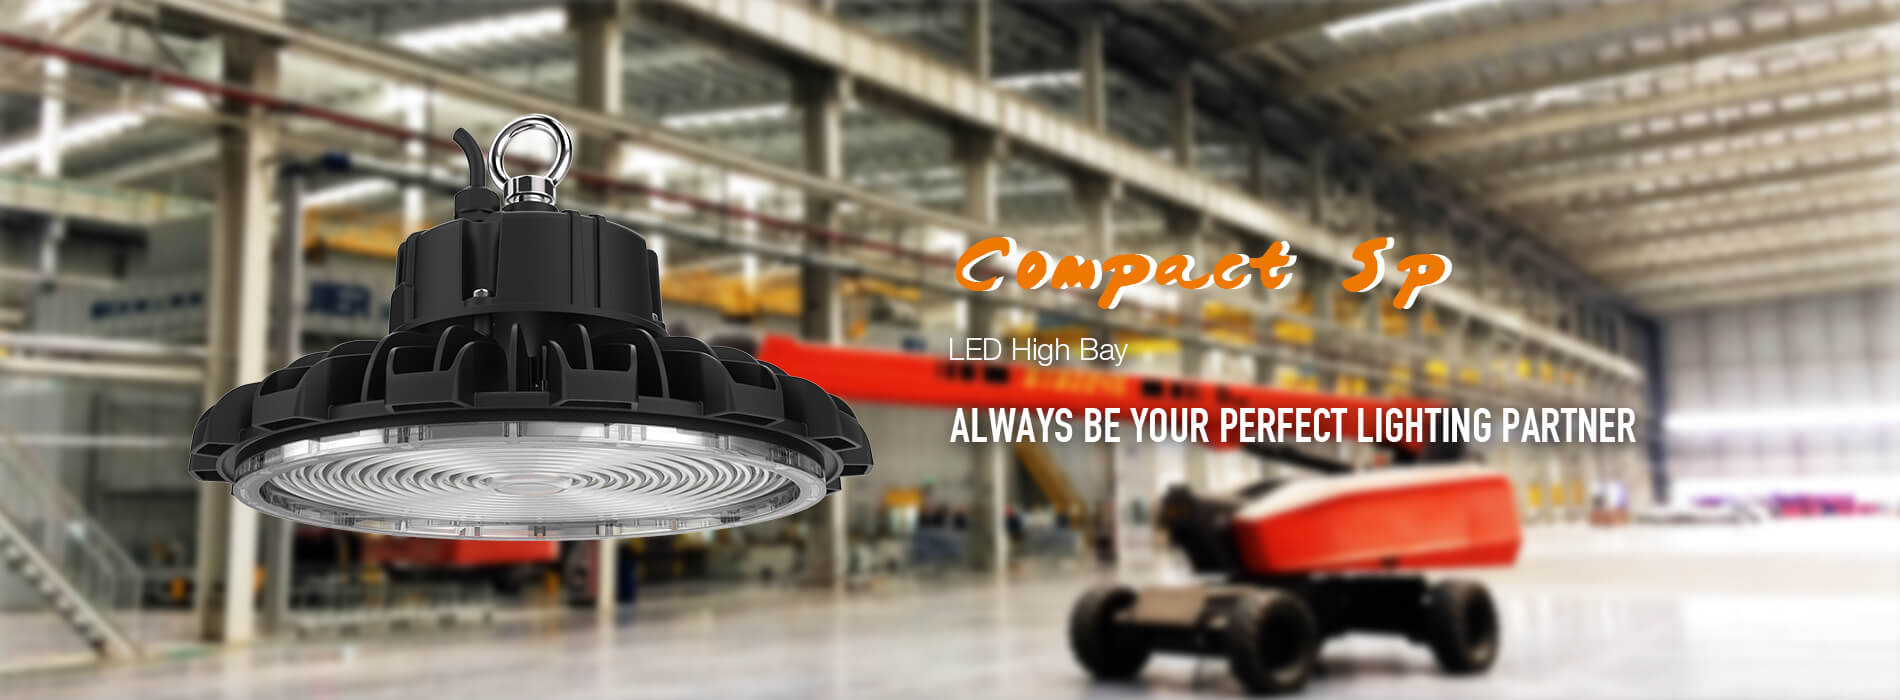 Compact Sp LED High Bay Light